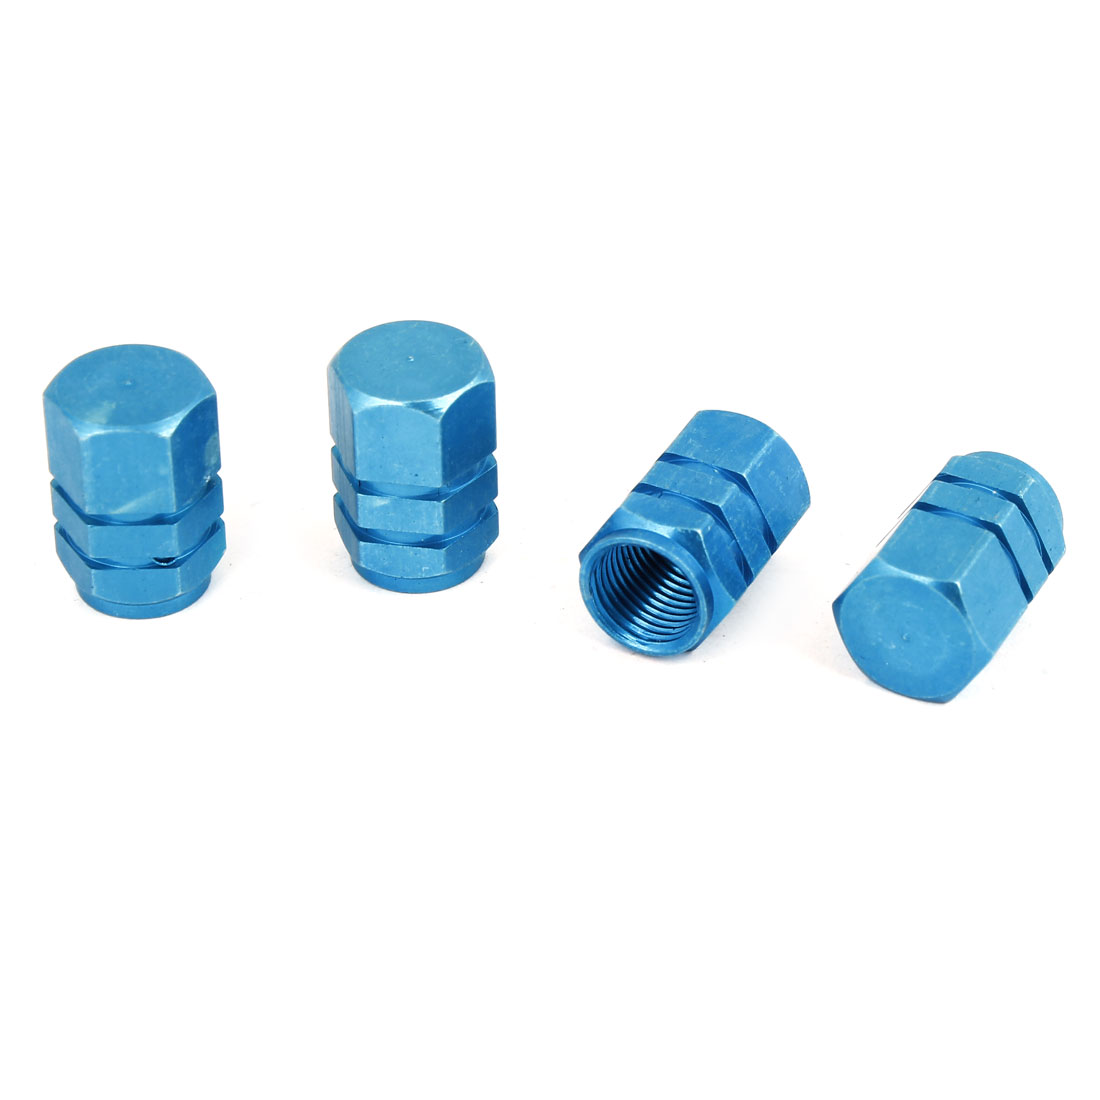 4 Pcs Hexagon Design Tyre Tire Valve Stems Caps Covers Protector Cyan Blue for Car